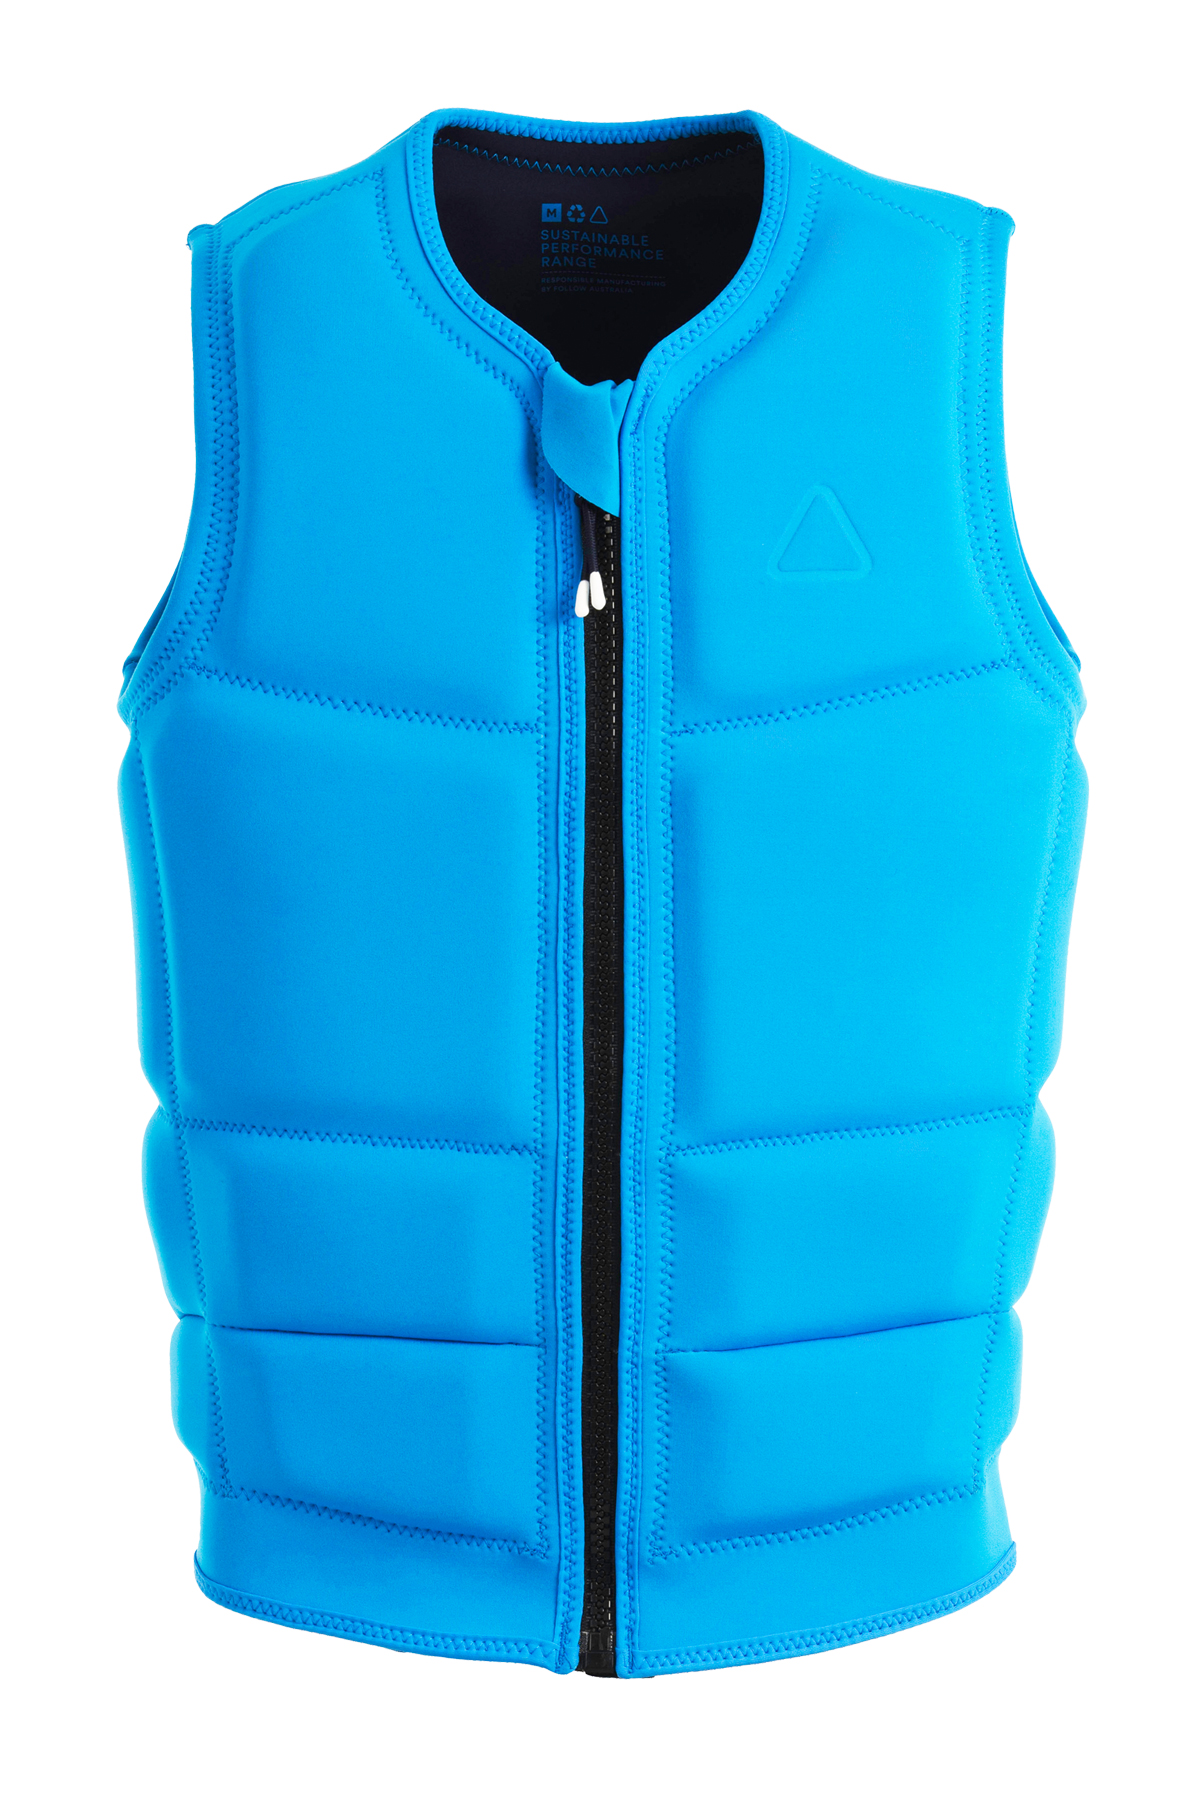 S.P.R. REGULAR IMPACT VEST - ROYAL FOLLOW 2019